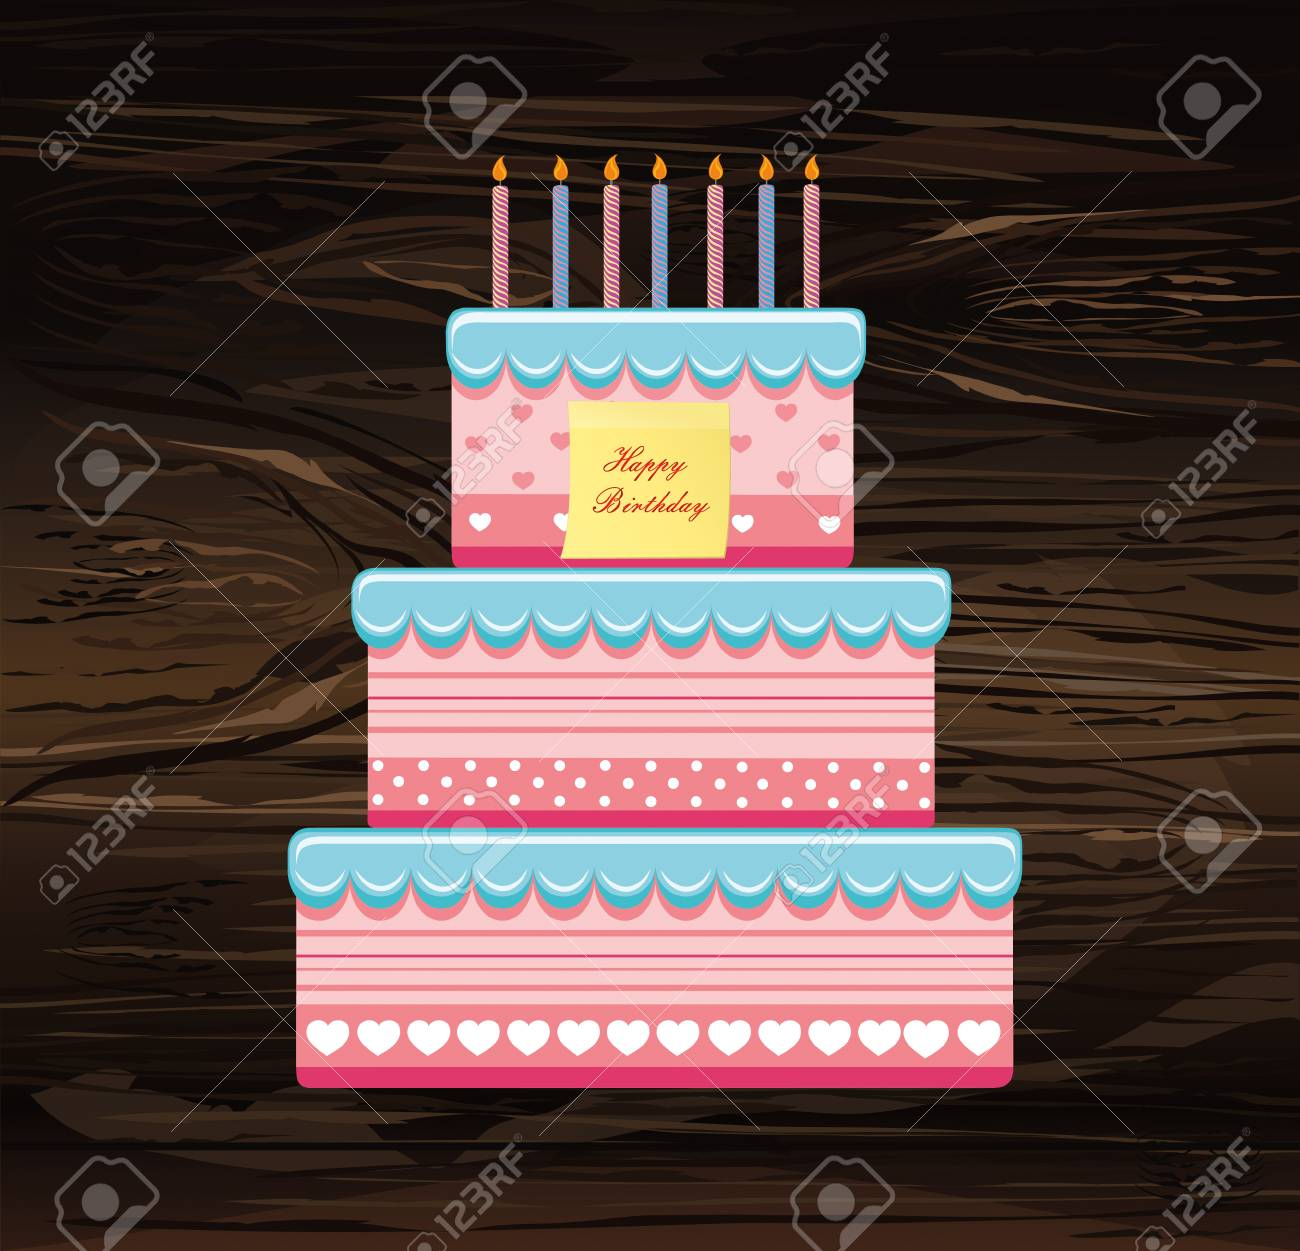 Festive Big Cake Happy Birthday Empty Yellow Sheet Of Paper For Notes Sticker